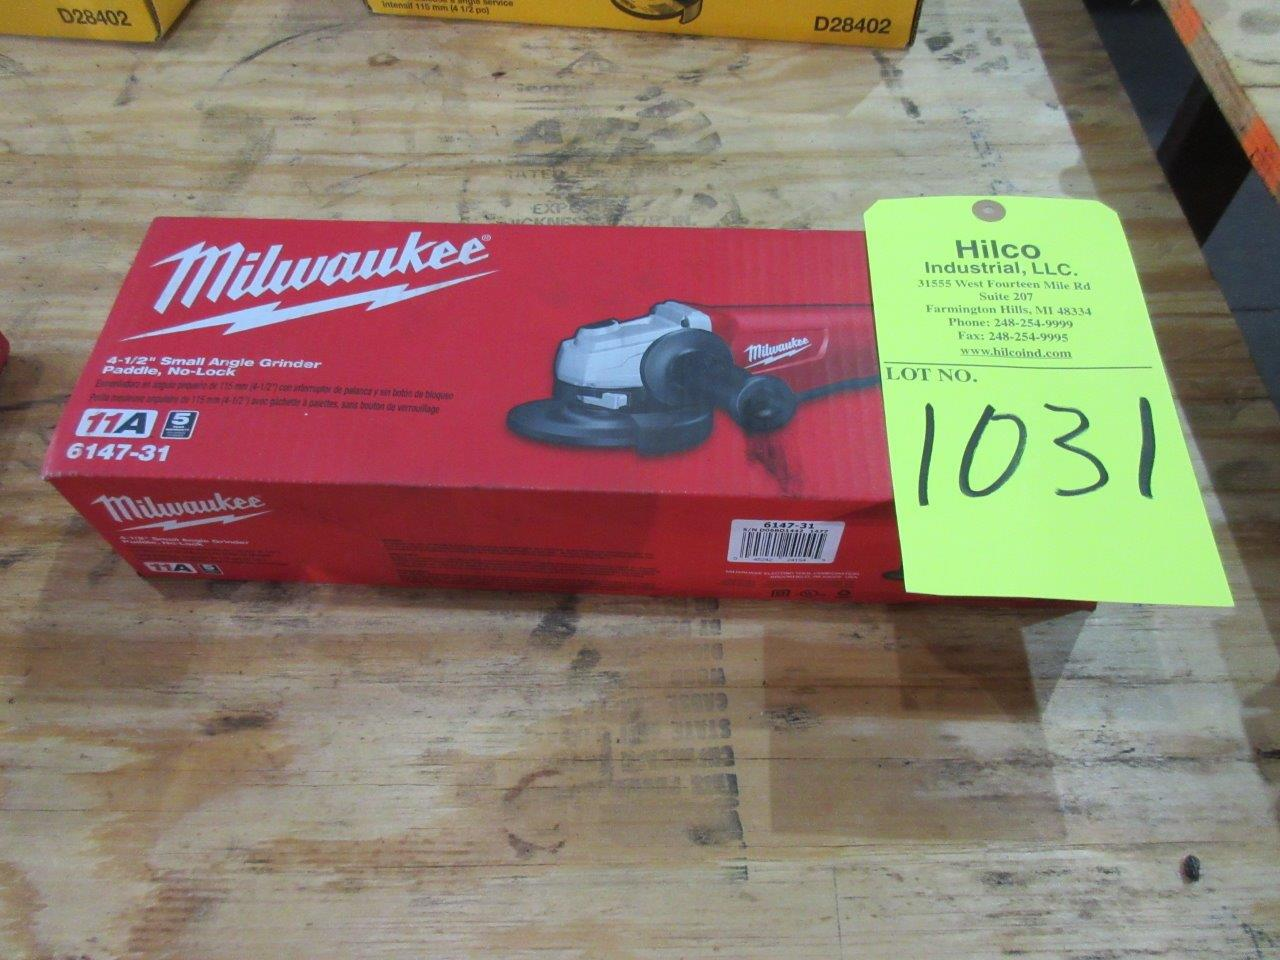 "Lot 1031 - Milwaukee Cat # 6147-30 New 4 1/2"" Angle Grinder"